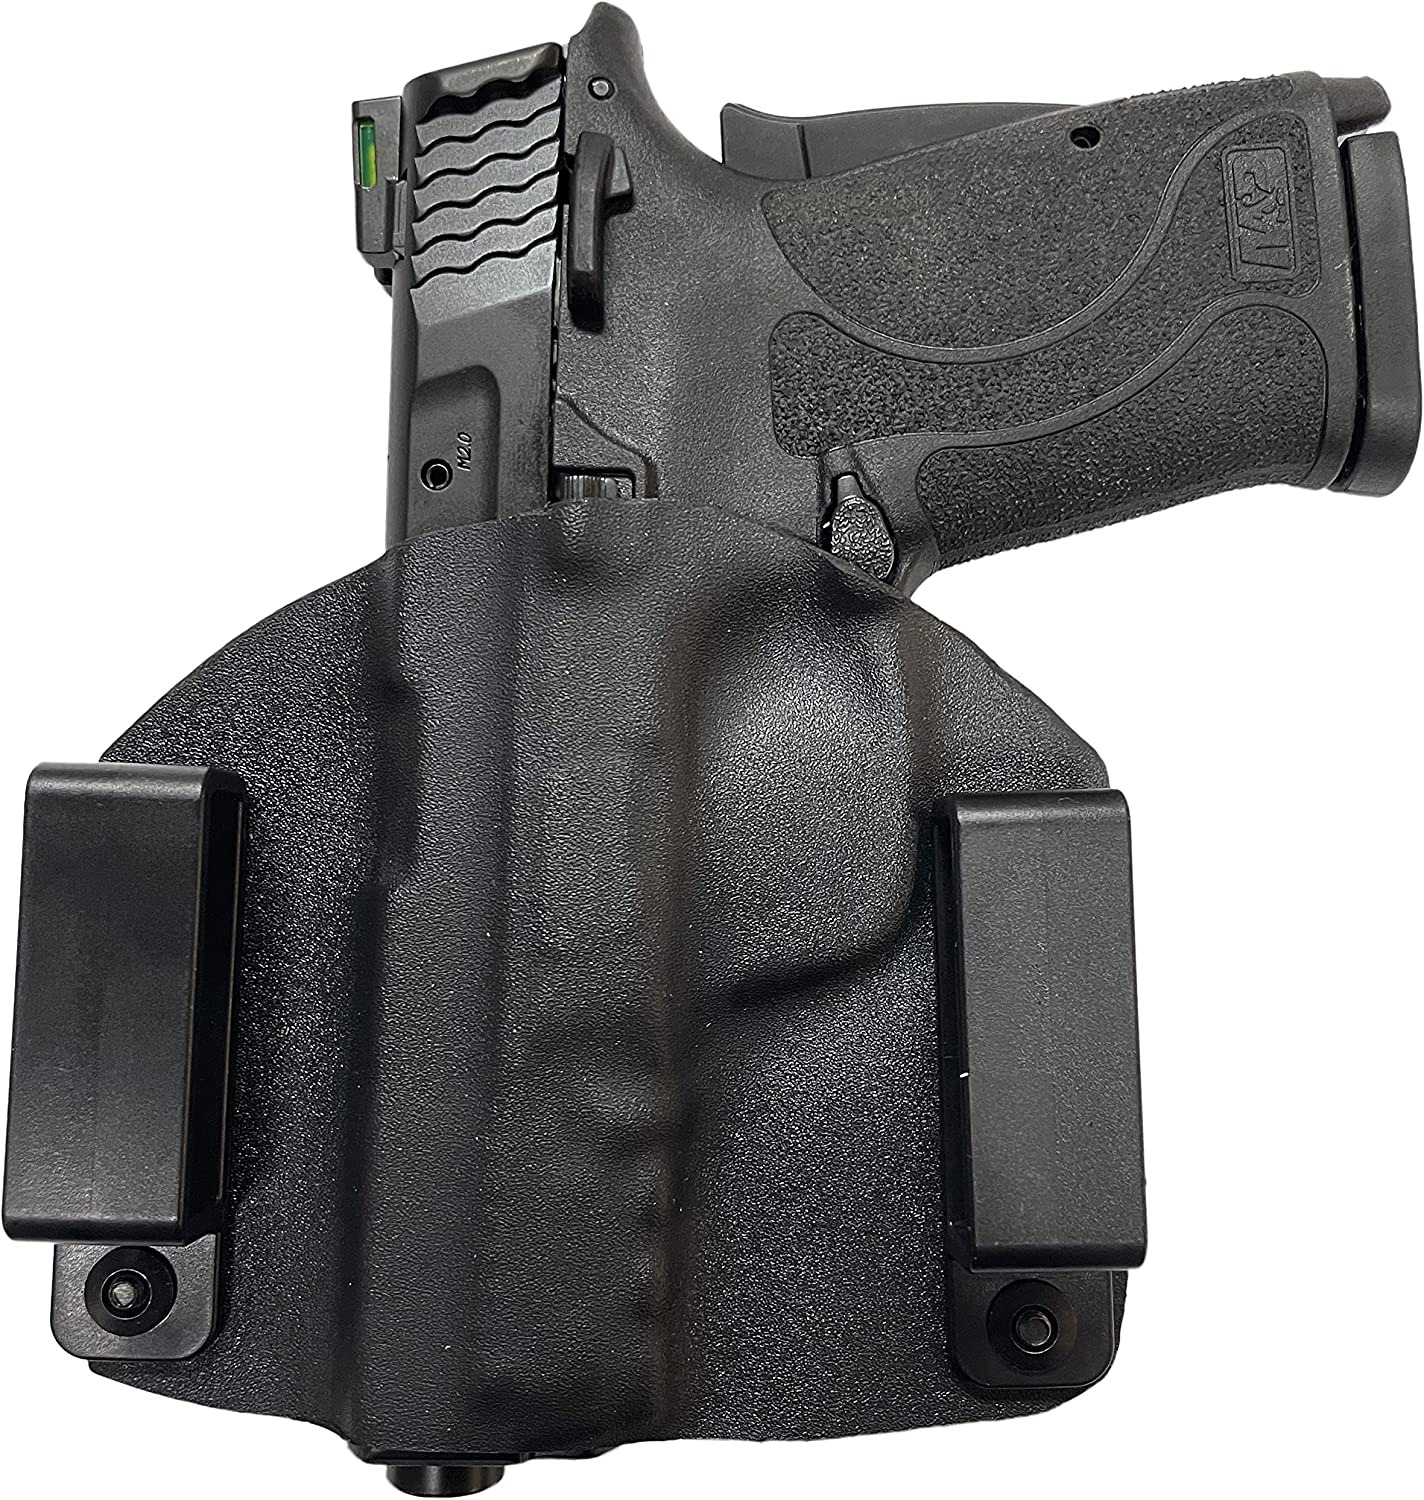 Outside The Pants Kydex Hip Super Special SALE held Gun FITS: - Bombing new work OWB Springfield Holster